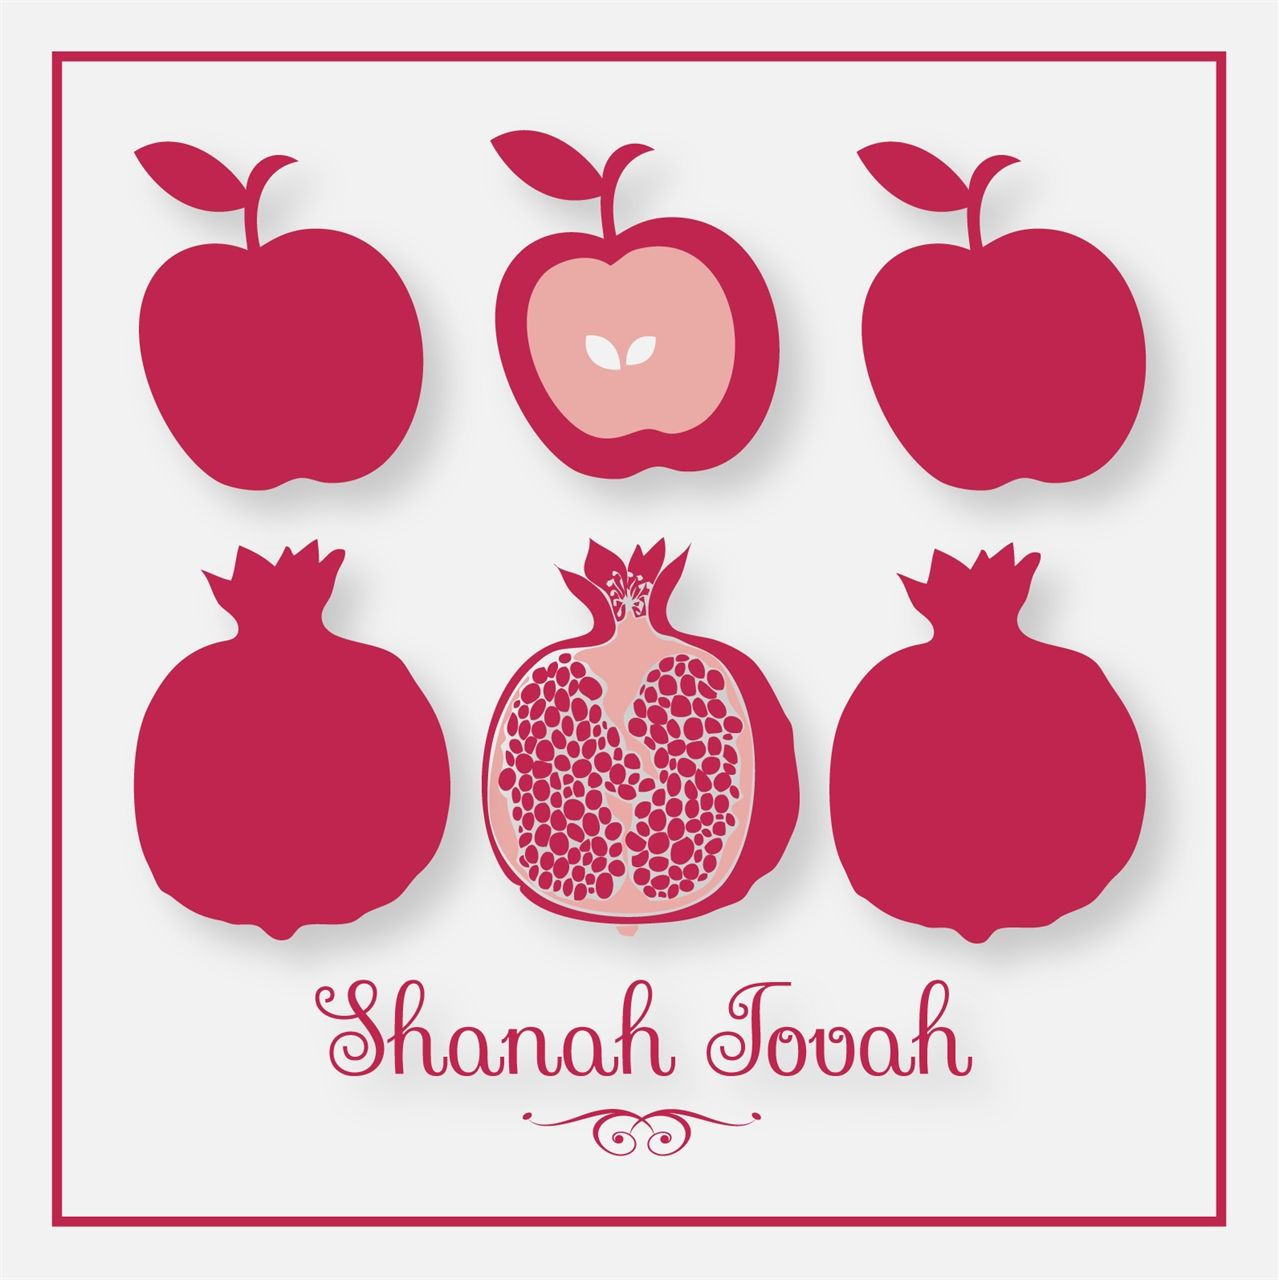 Sweet and fruitful shana tovah the big fat jewish wedding ananya rosh hashanah greetingsrosh m4hsunfo